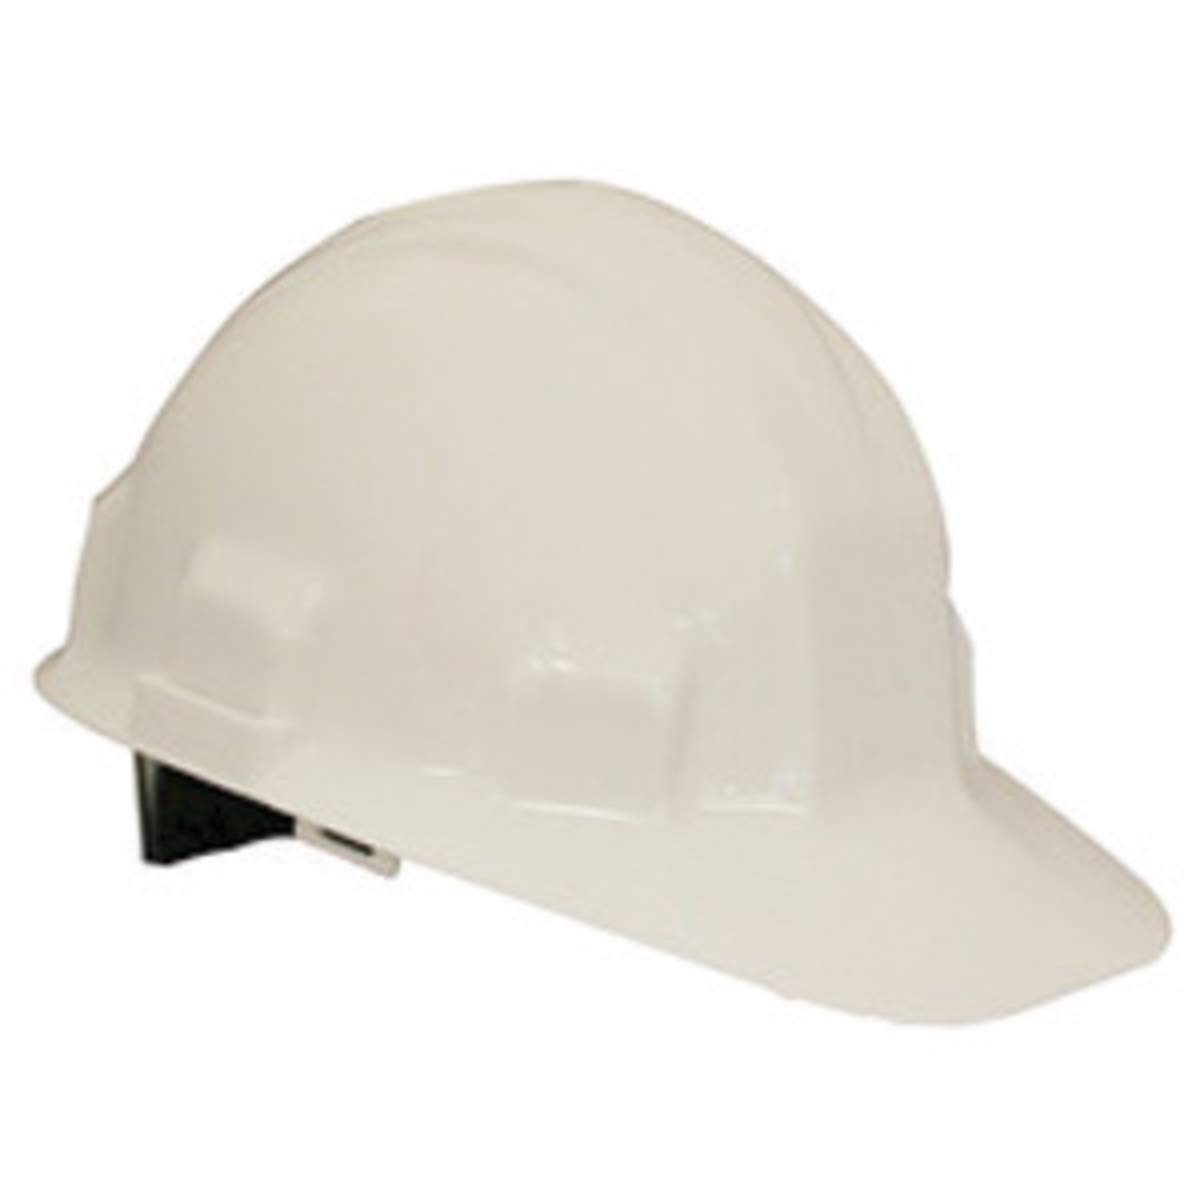 Cheap White Cap Safety, find White Cap Safety deals on line